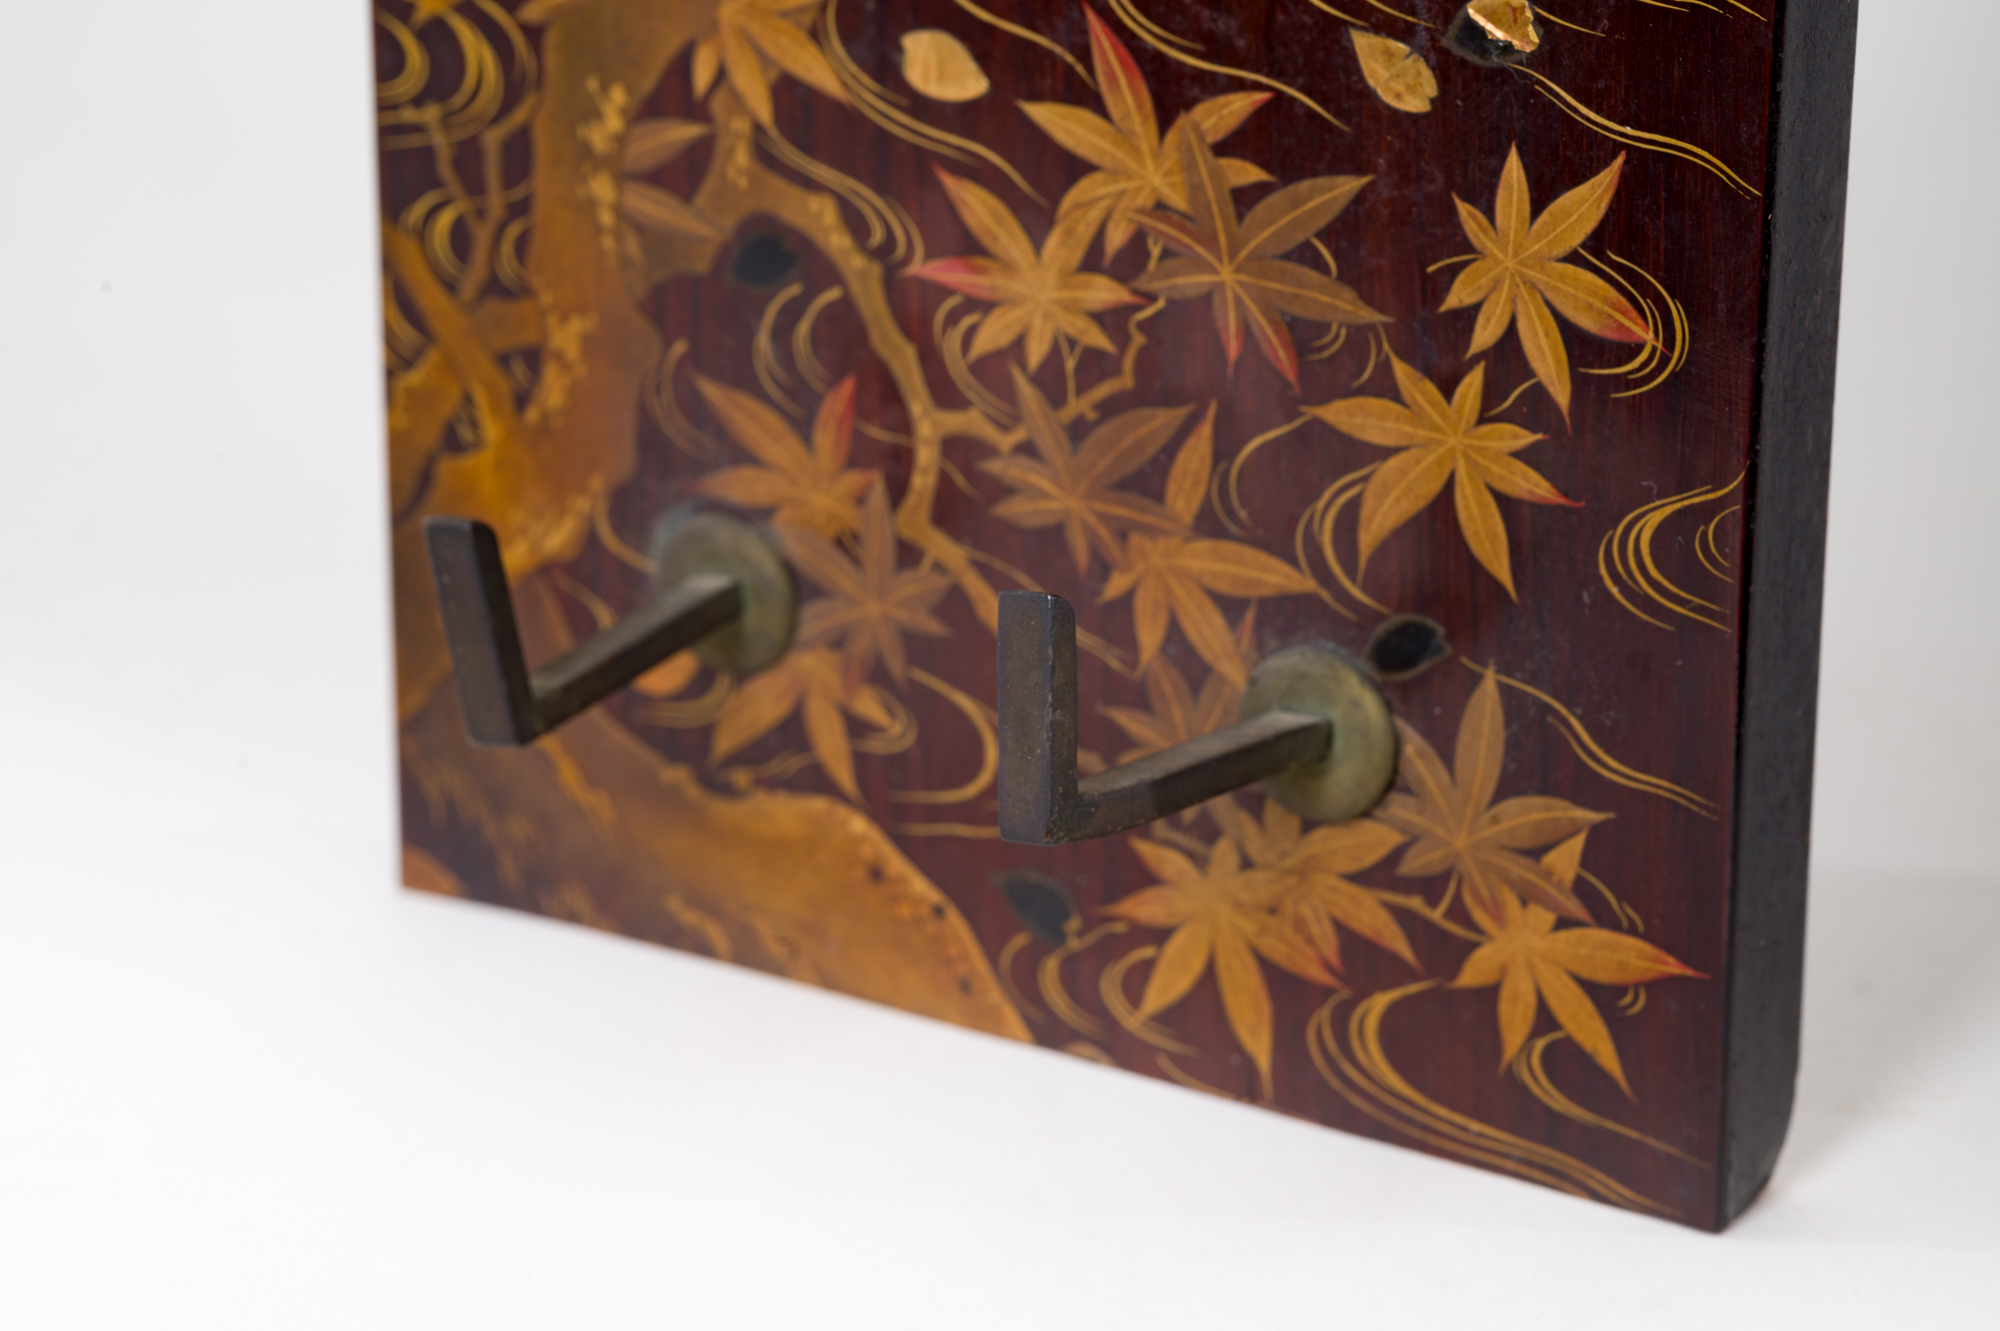 Japanese lacquer, Japanese antique, antique lacquer, Japanese antique lacquer,Japanese art,